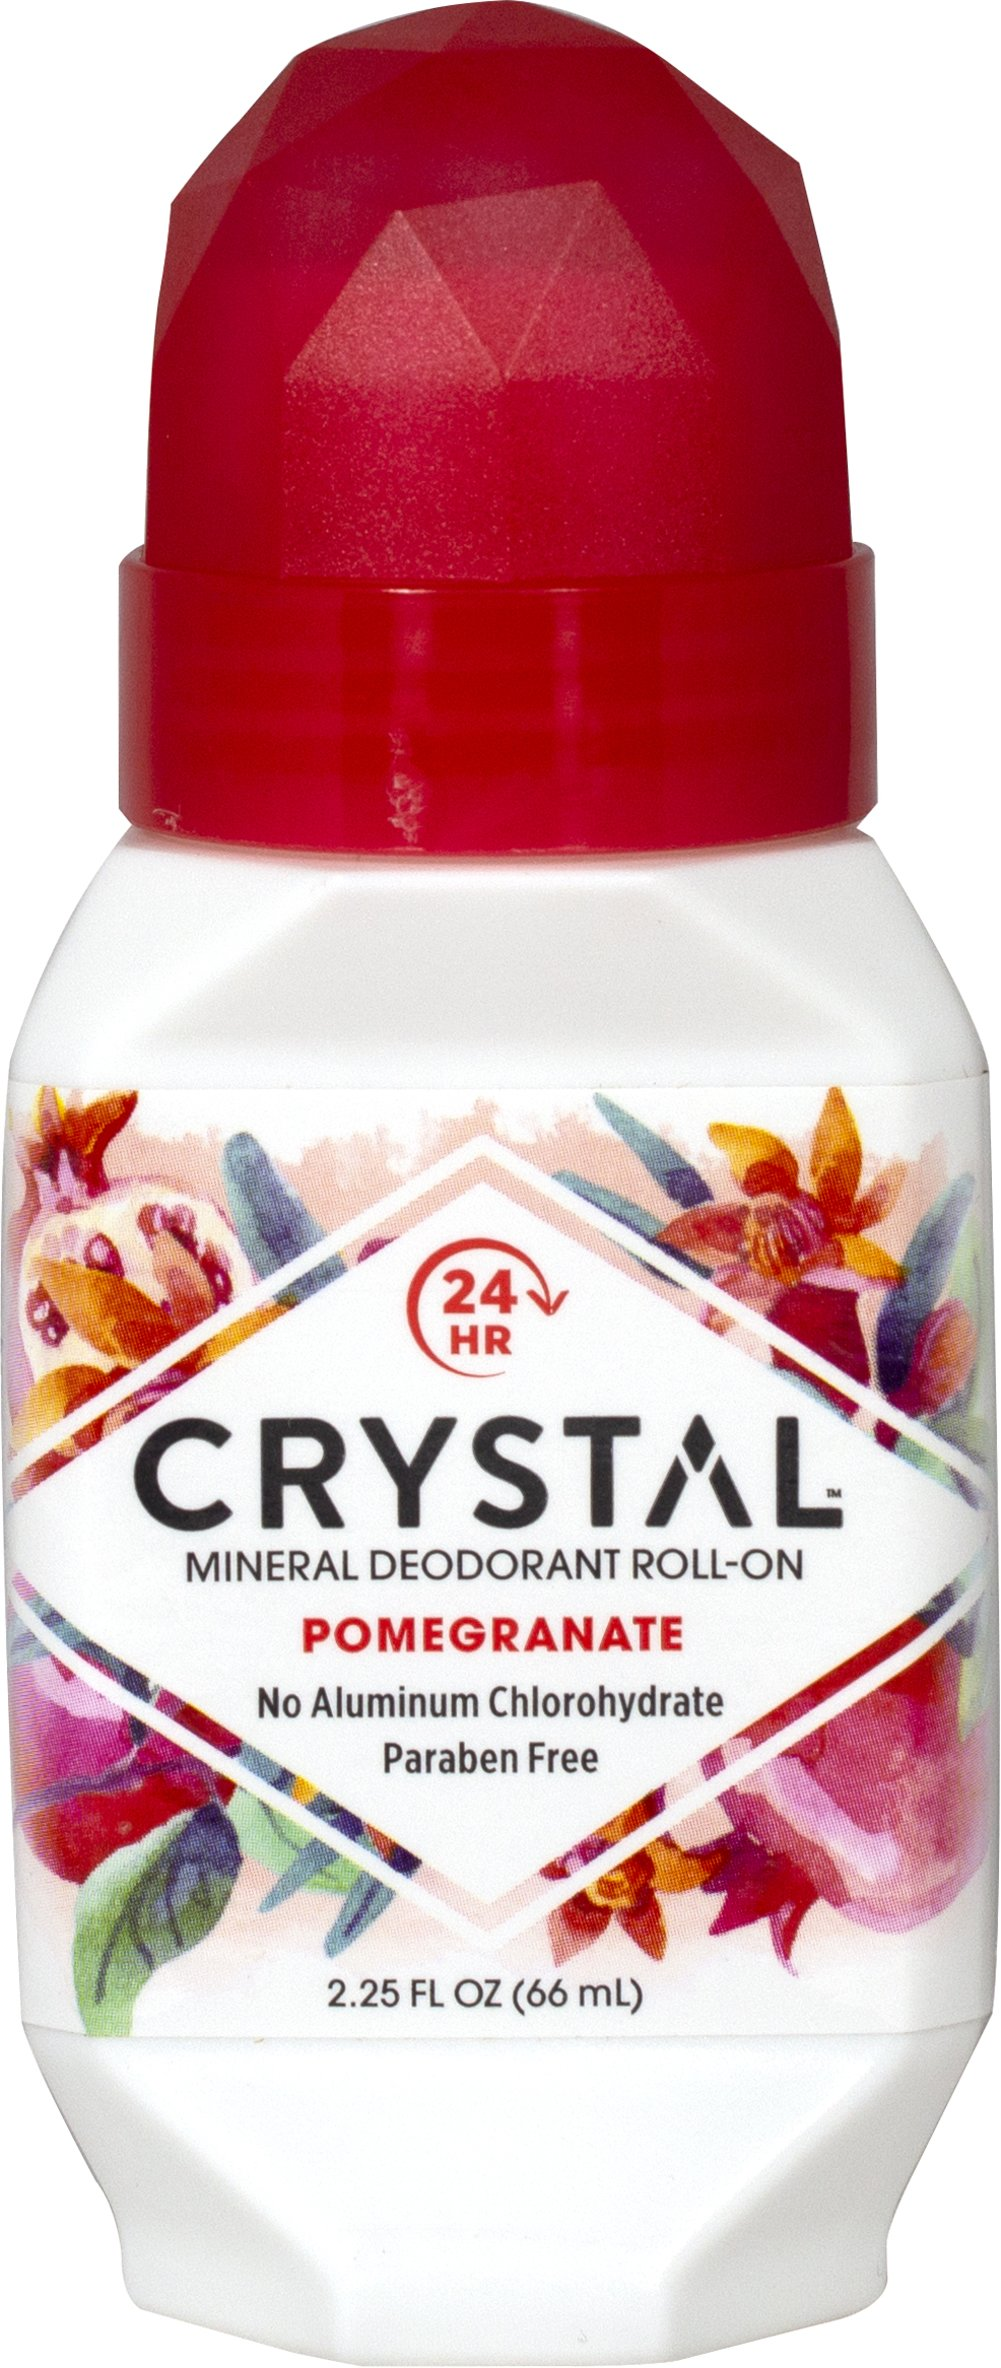 Crystal® Pomegranate Mineral Deodorant Roll-On <p><strong>From the Manufacturer's Label:</strong></p><p>Paraben Free</p><p>Hypoallergenic</p><p><strong>Natural Deodorant Protection</strong></p><p>Crystal essence™ Pomegranate, made of natural mineral salts and infused with the refreshing aroma of pomegranate, creates an invisible protective barrier against odor-causing bacteria.  Pomegranate is an antioxidant.